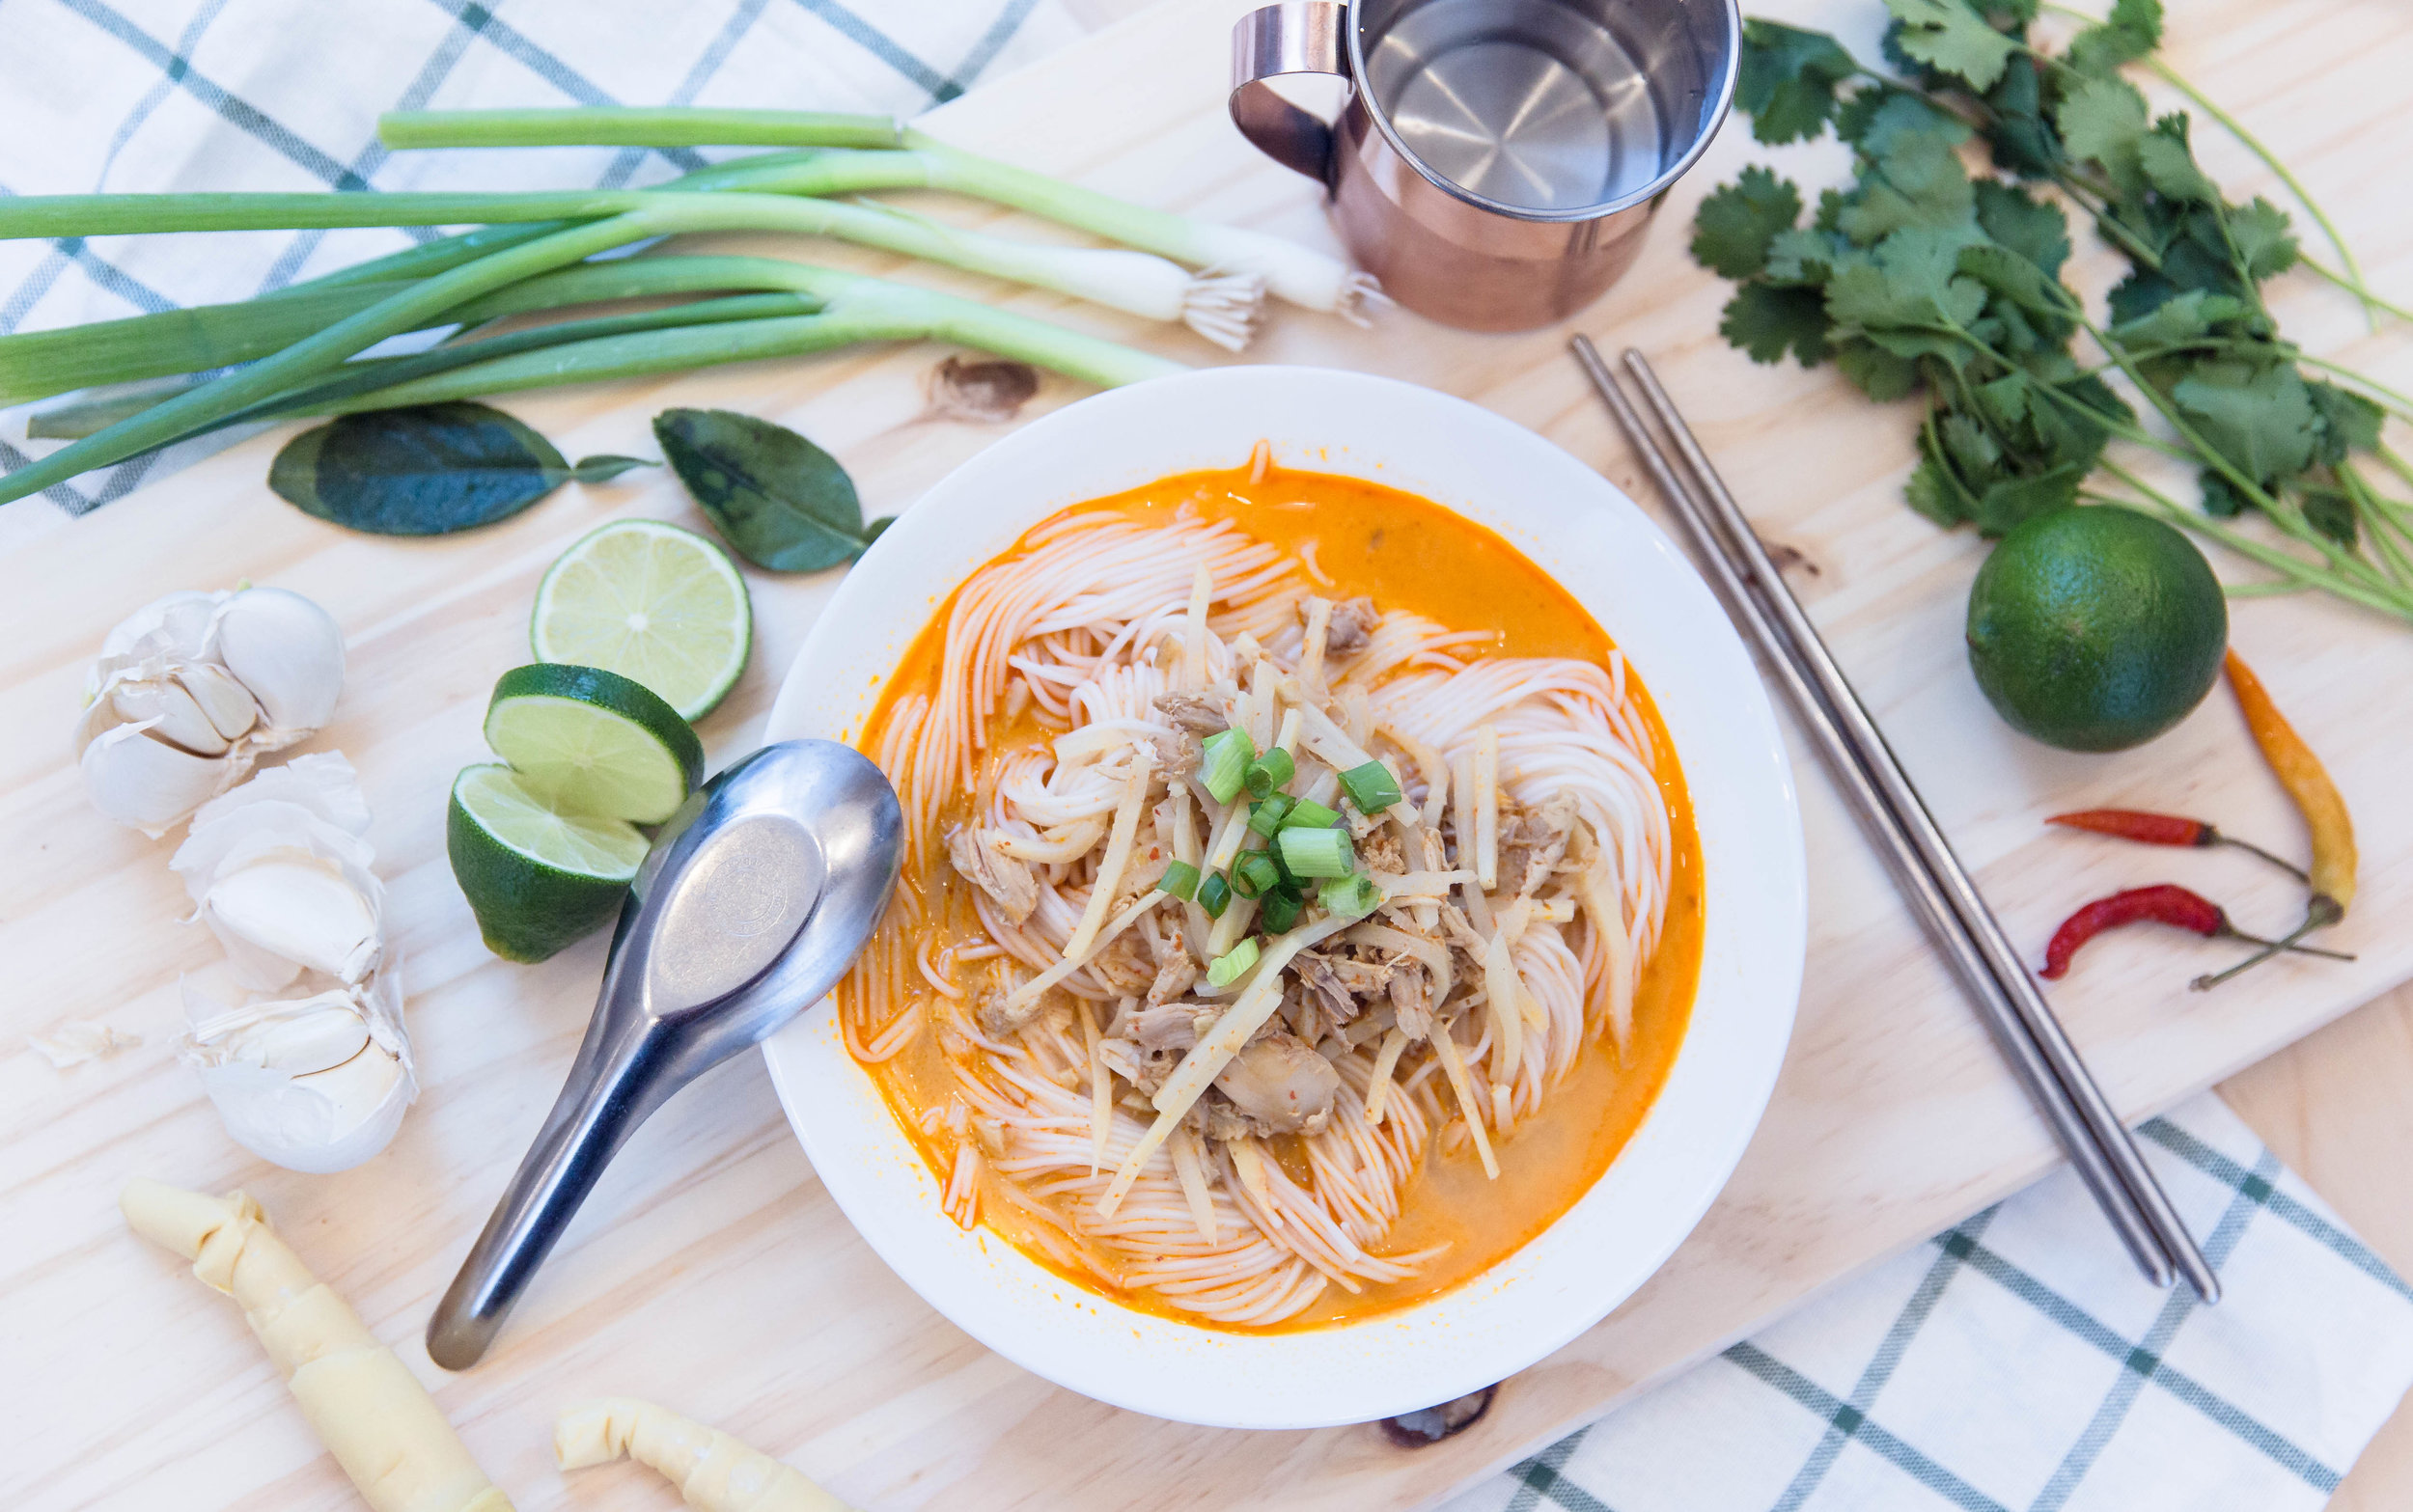 Khao Poon - An underestimated and lesser known noodle dish in the Asian community. It's known origin is from Laos, and has now spread all across Asia and the United States. There are many different variations of this dish online; some made with coconut milk, some without. The ingredients can easily be found at your local Asian grocery store, and it's an easy recipe to follow.